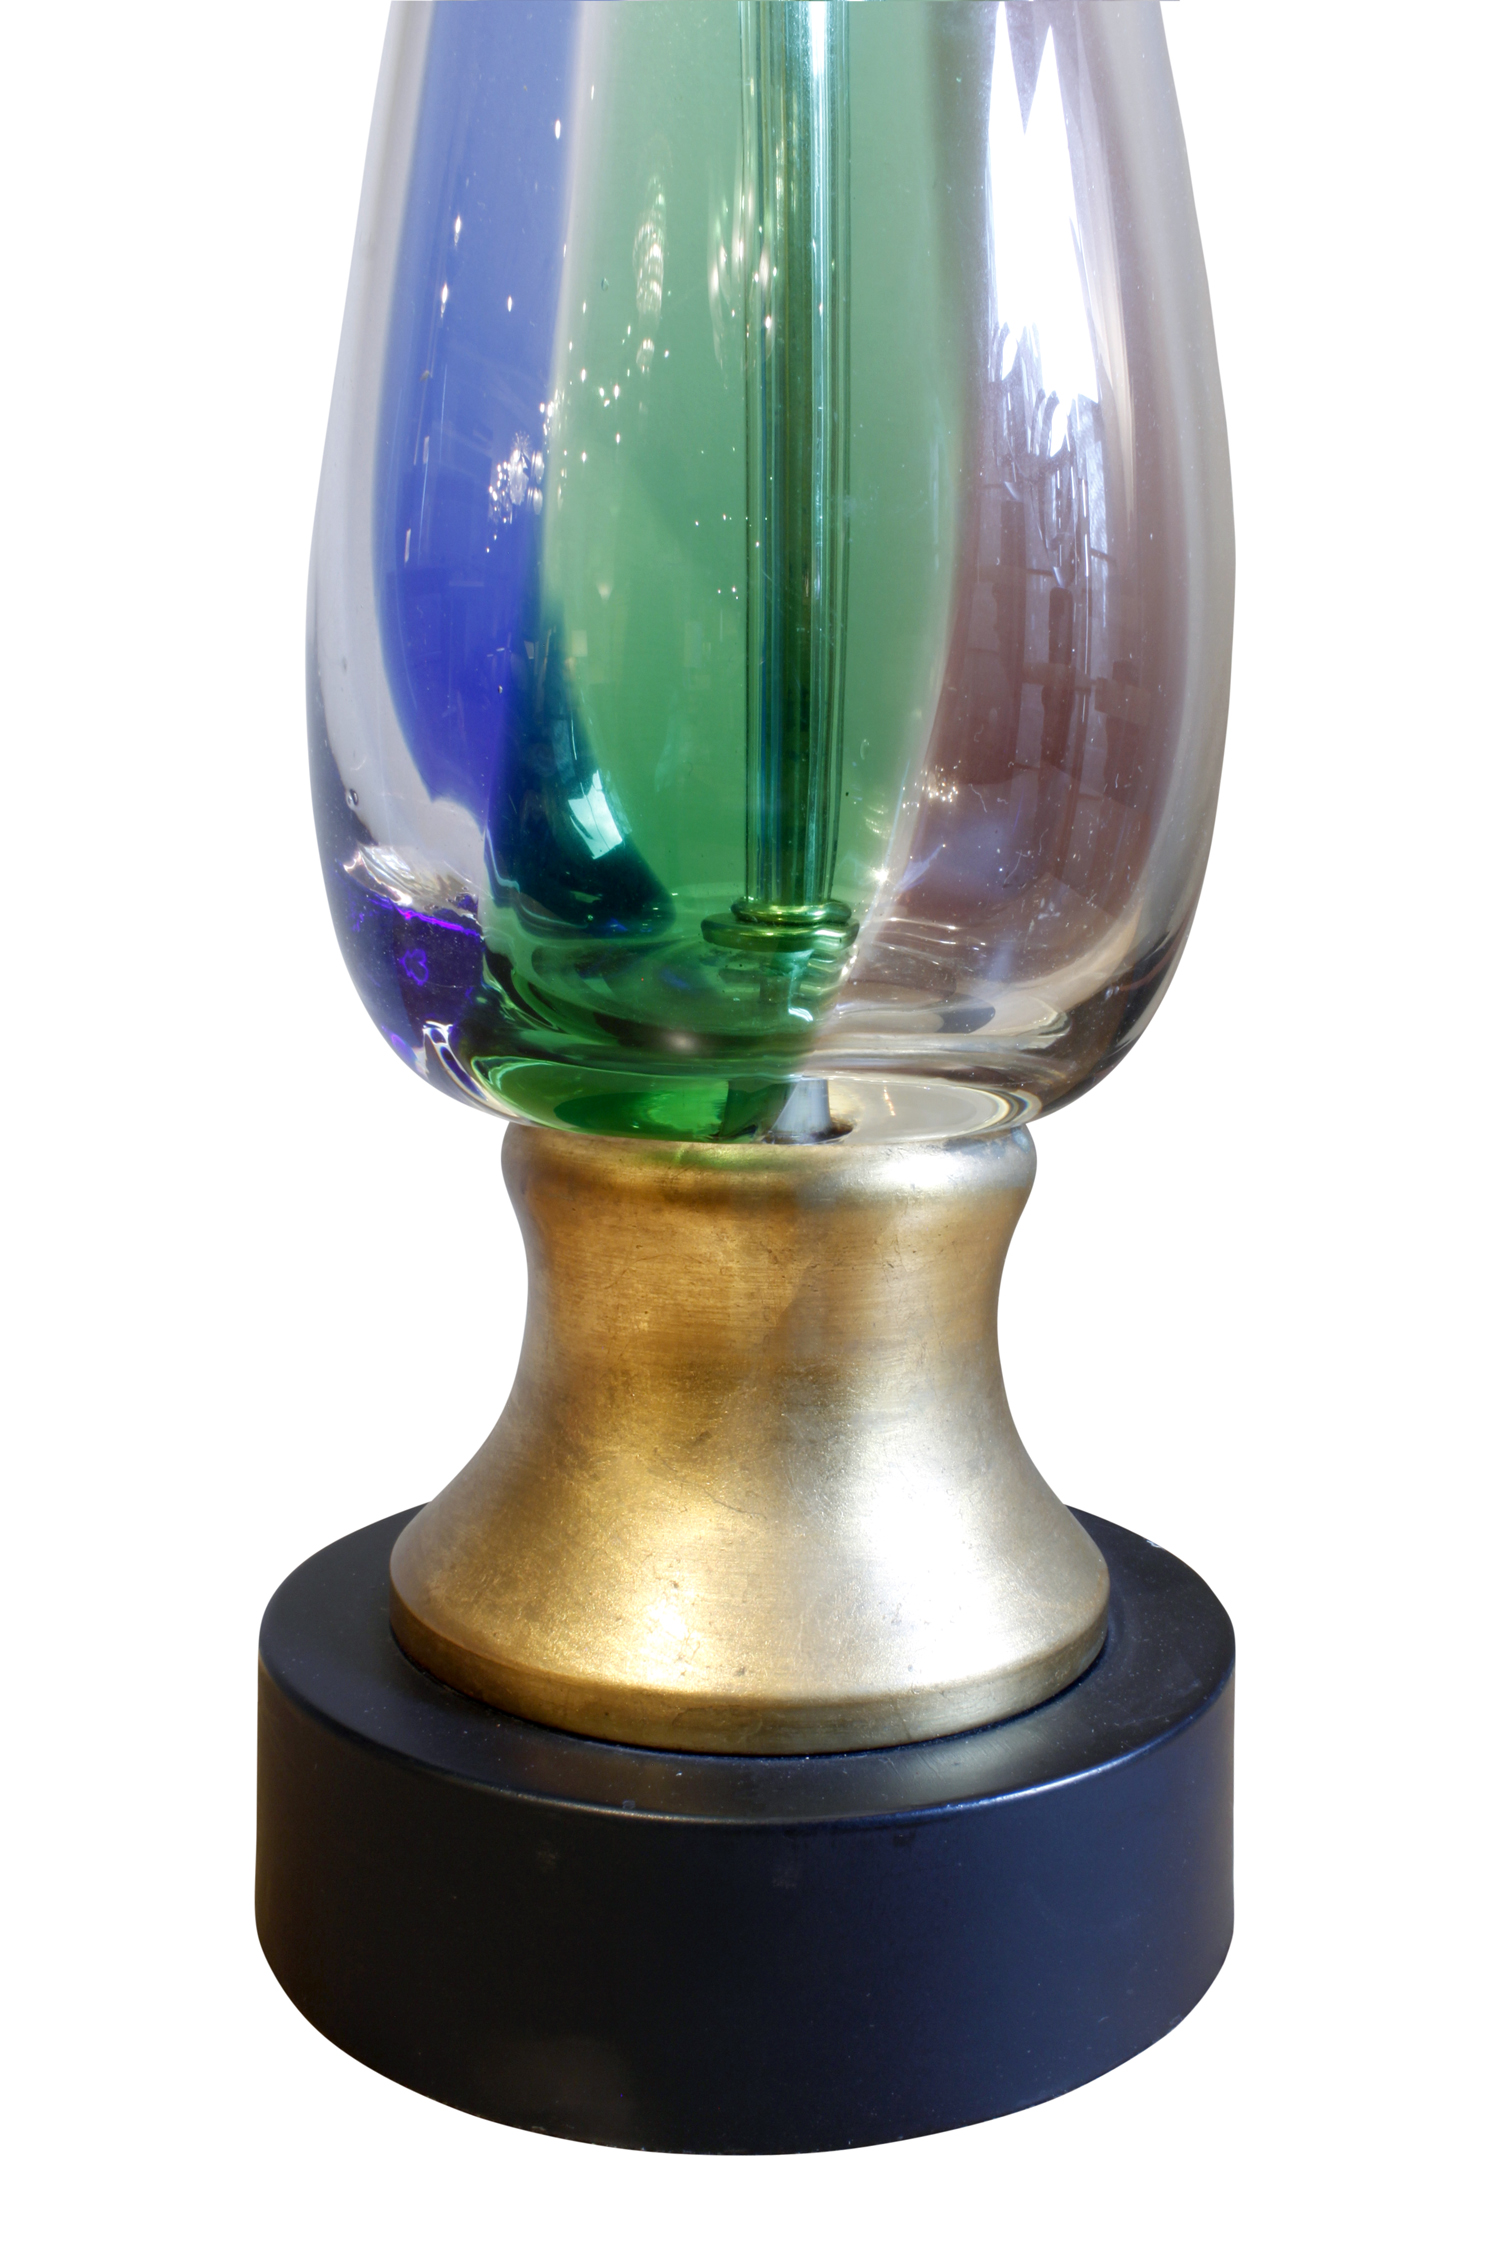 Murano pr red blue green clear table lamps pair bse2.jpg